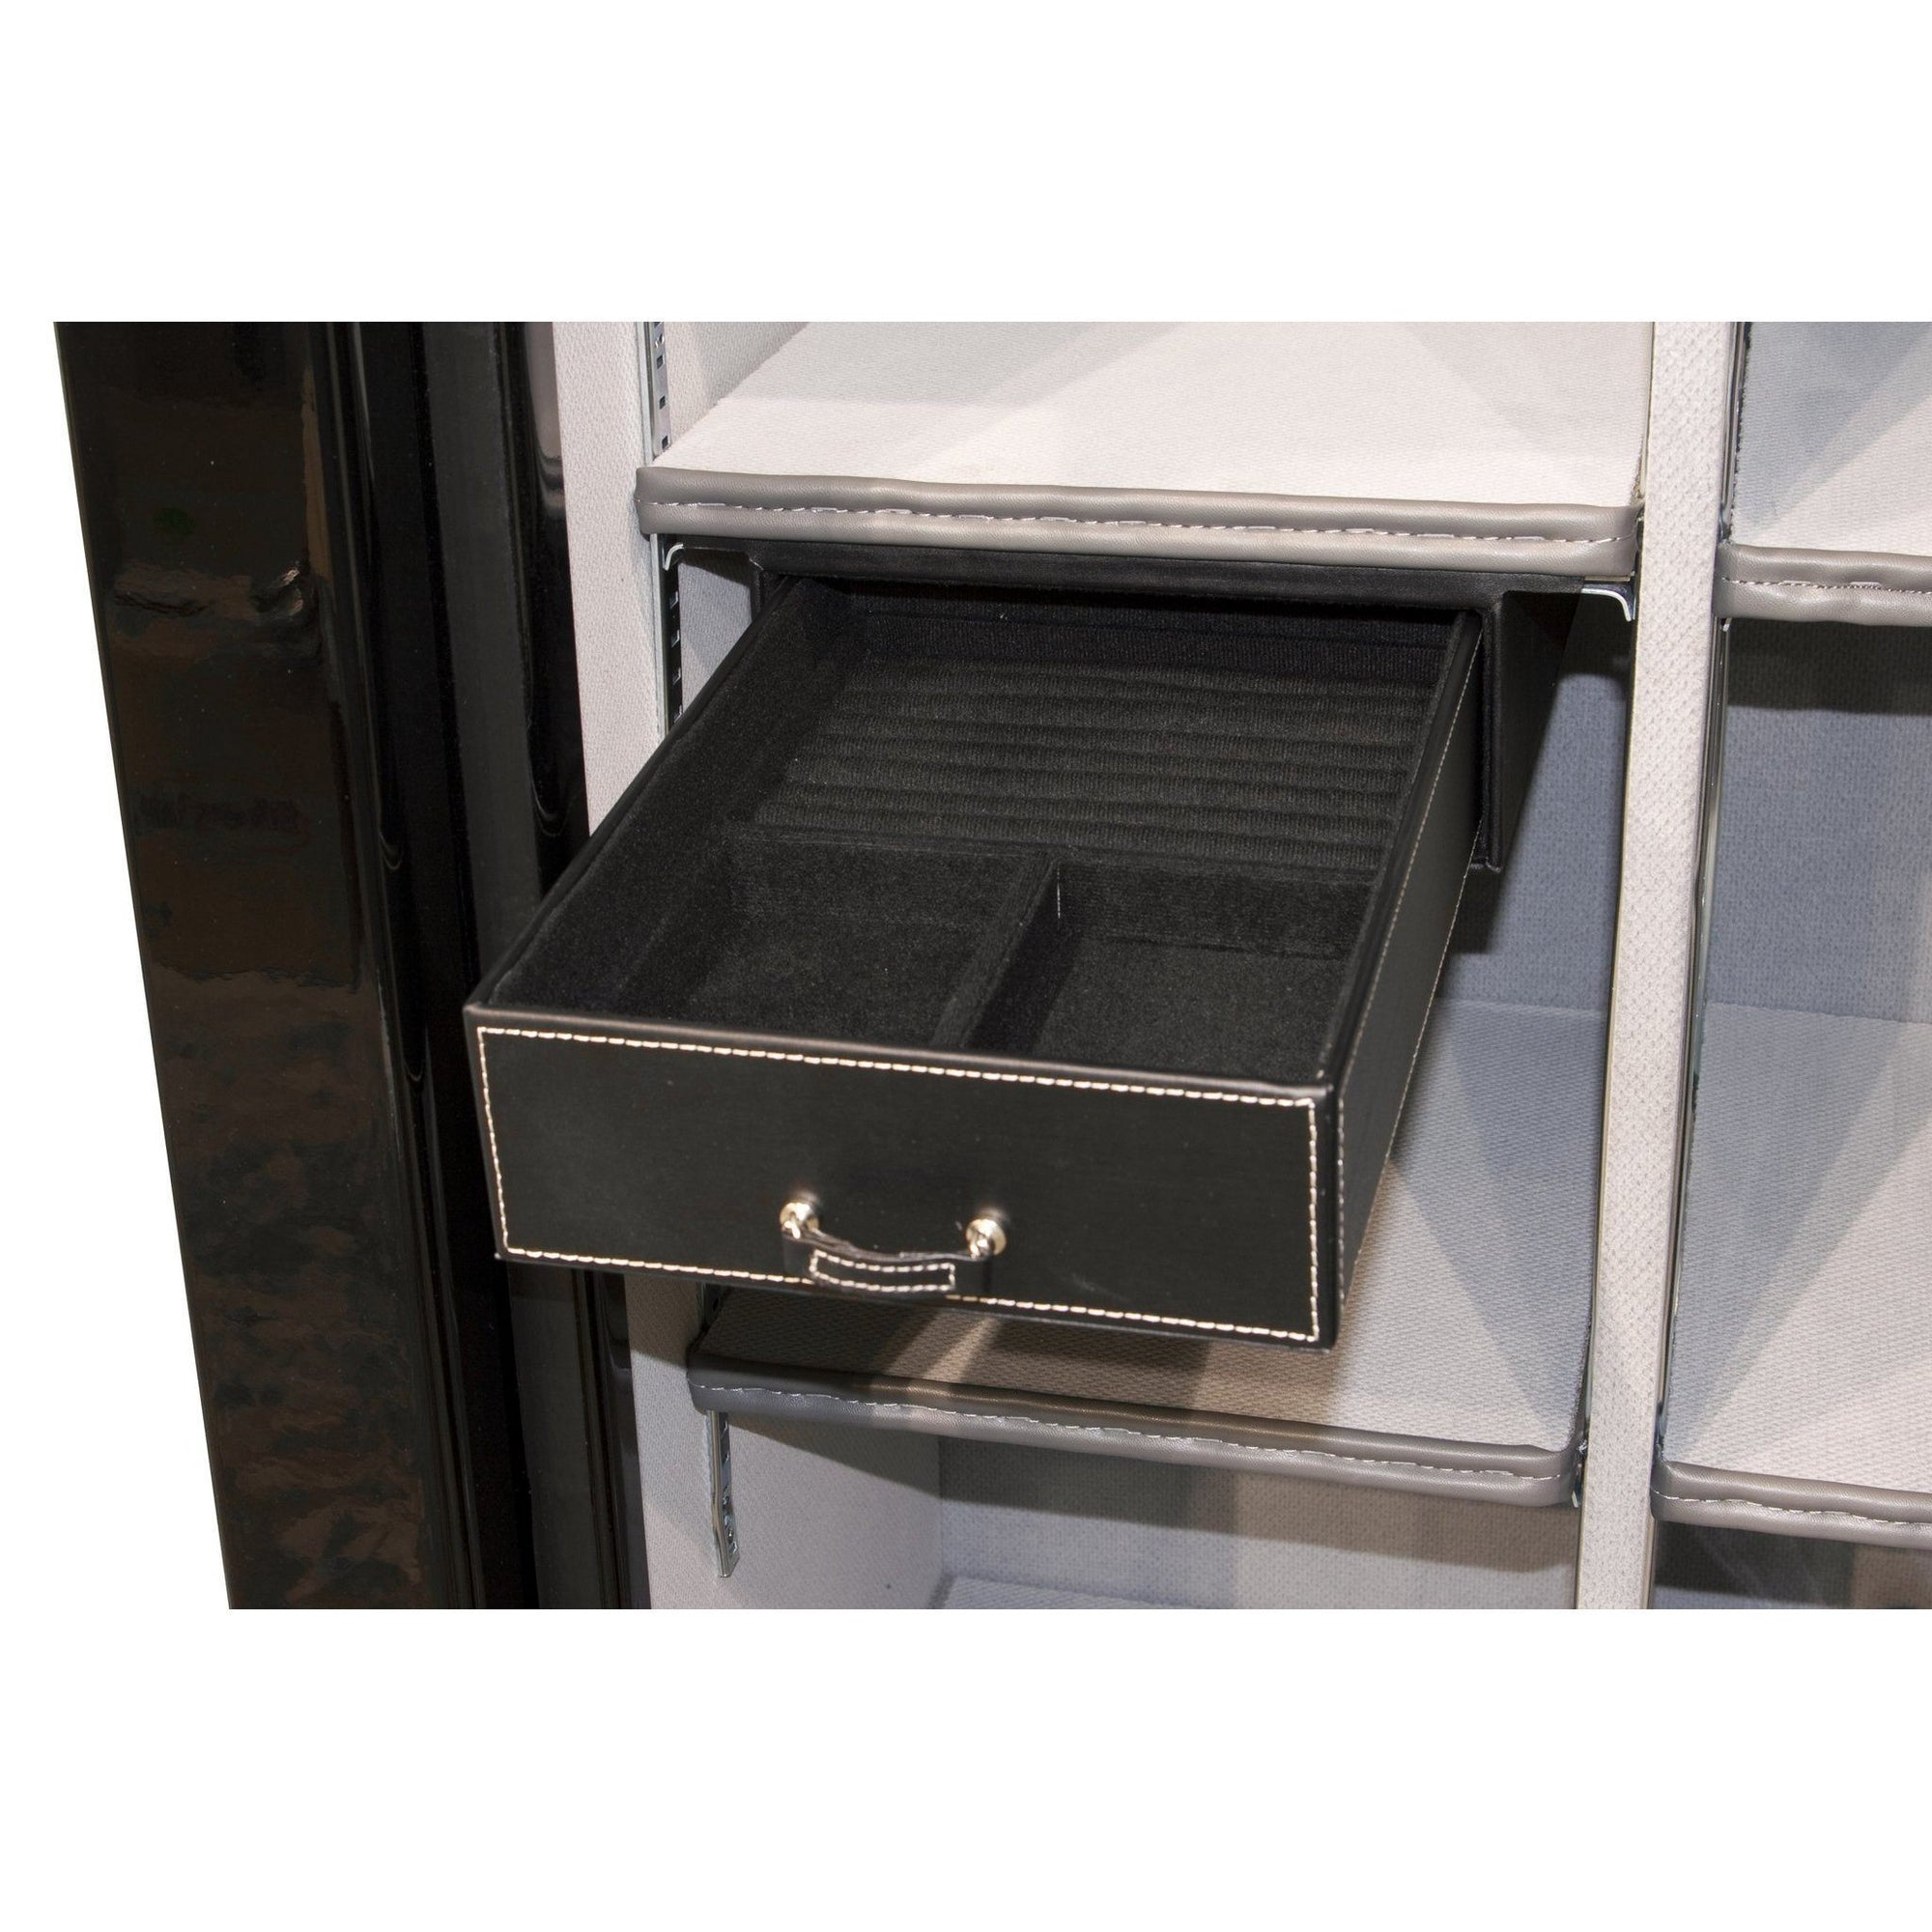 Accessory - Storage - Jewelry Drawer - 8.5 inch - under shelf mount - 23-50 size safes